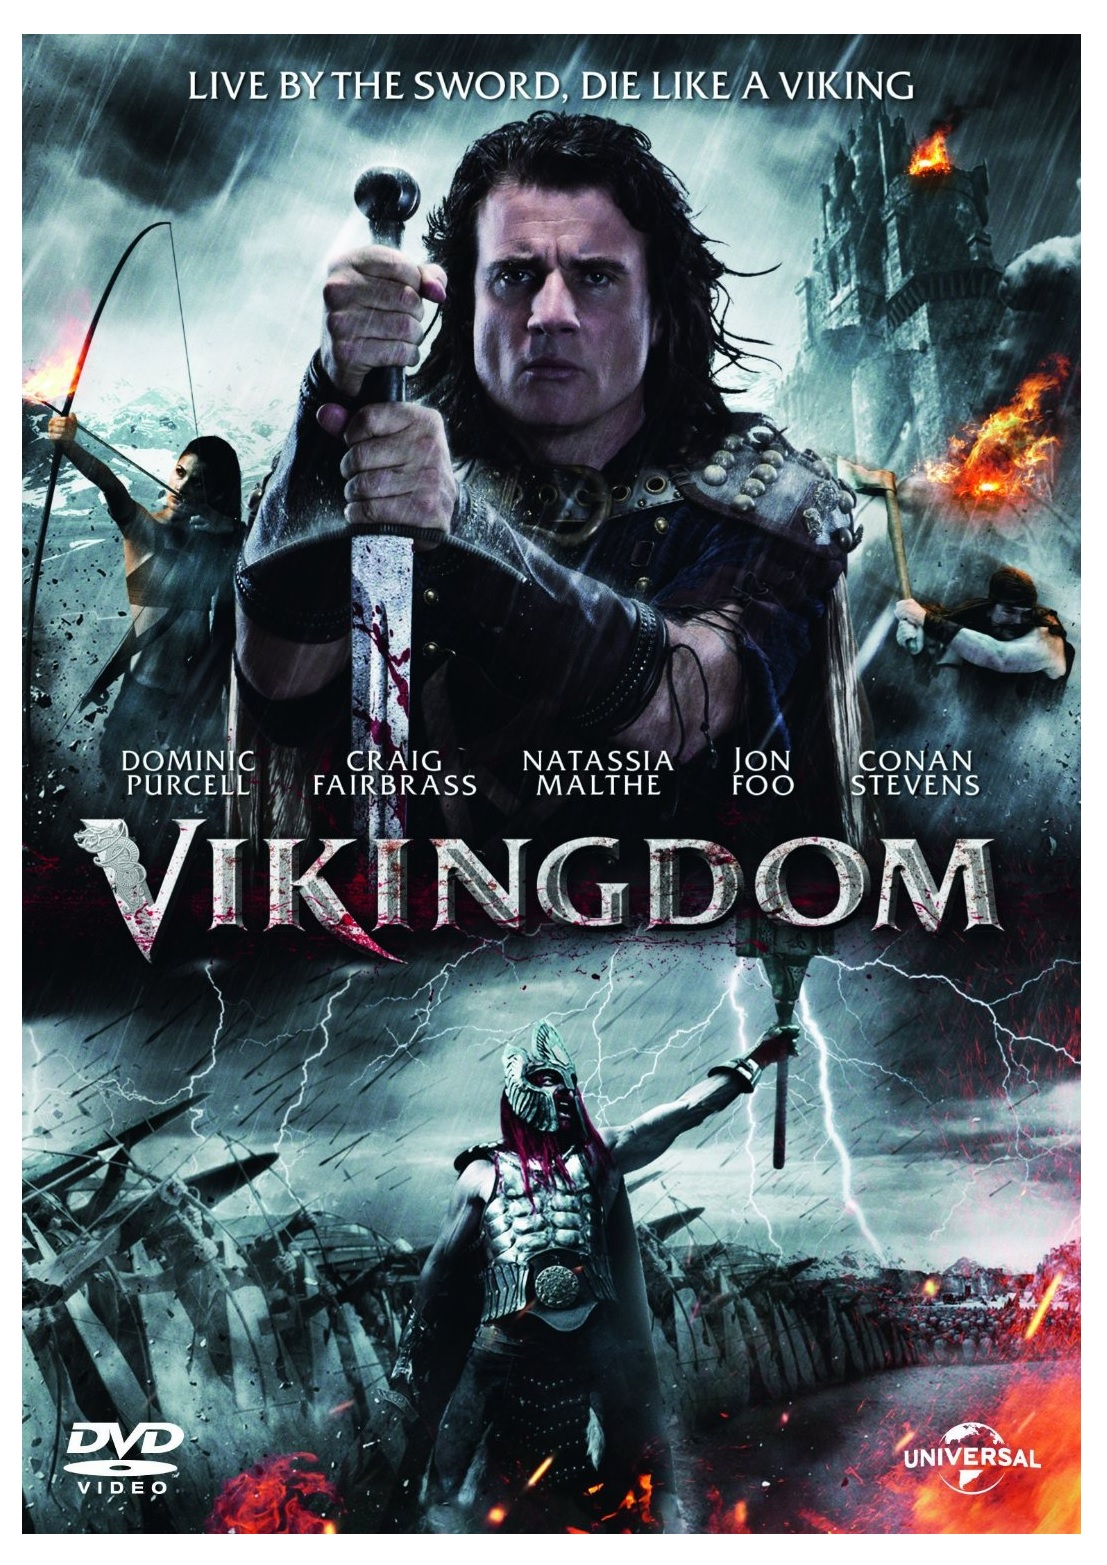 Download Film Vikingdom 2013